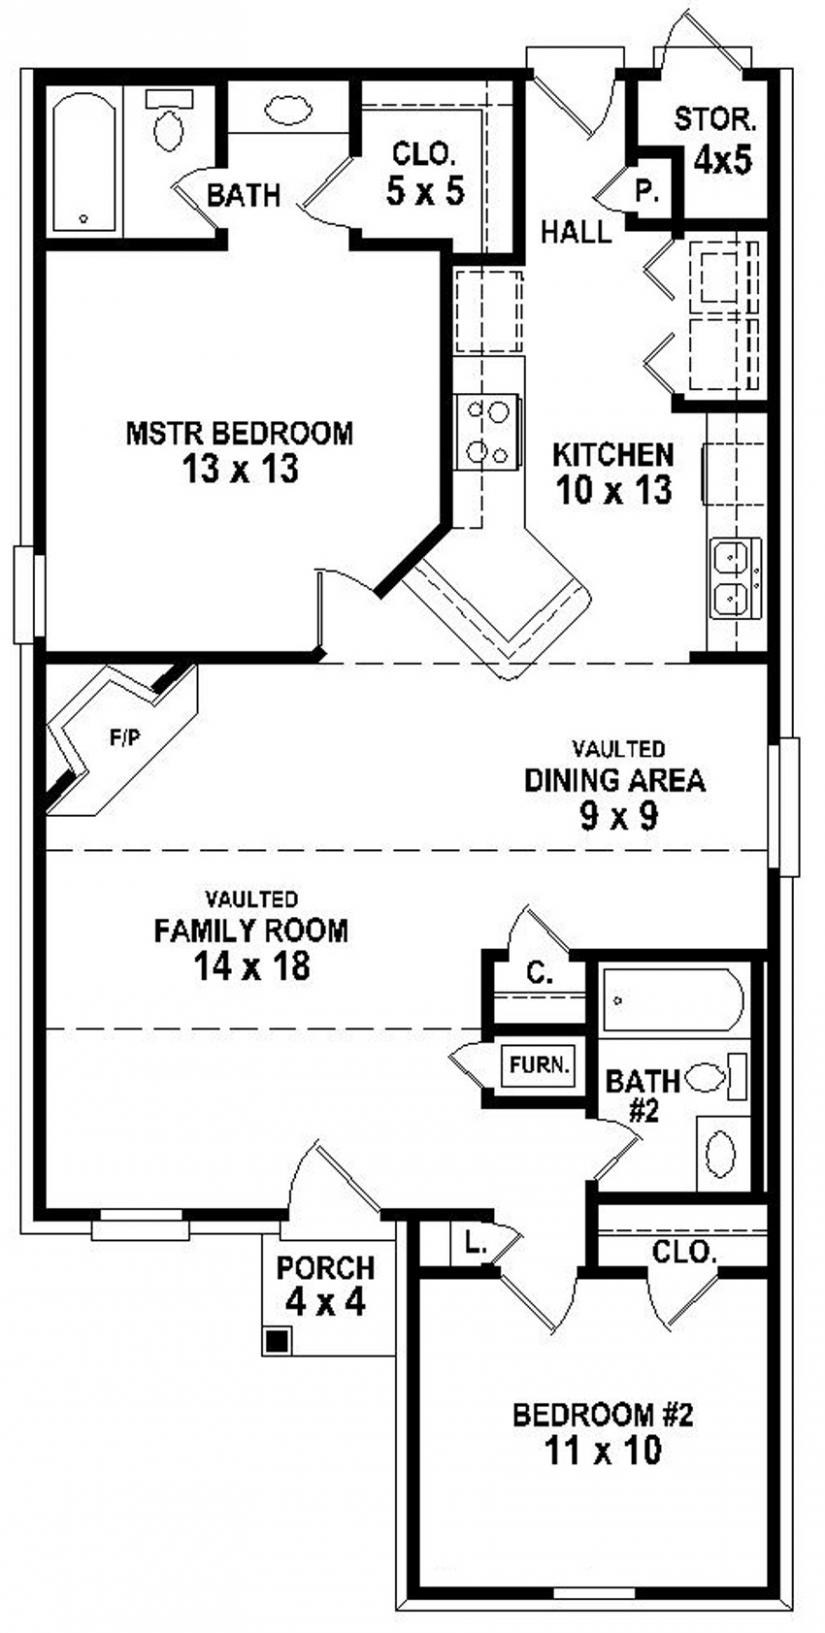 Simple 5 Bedroom House Plans Simple 2 Bedroom House Floor Plans